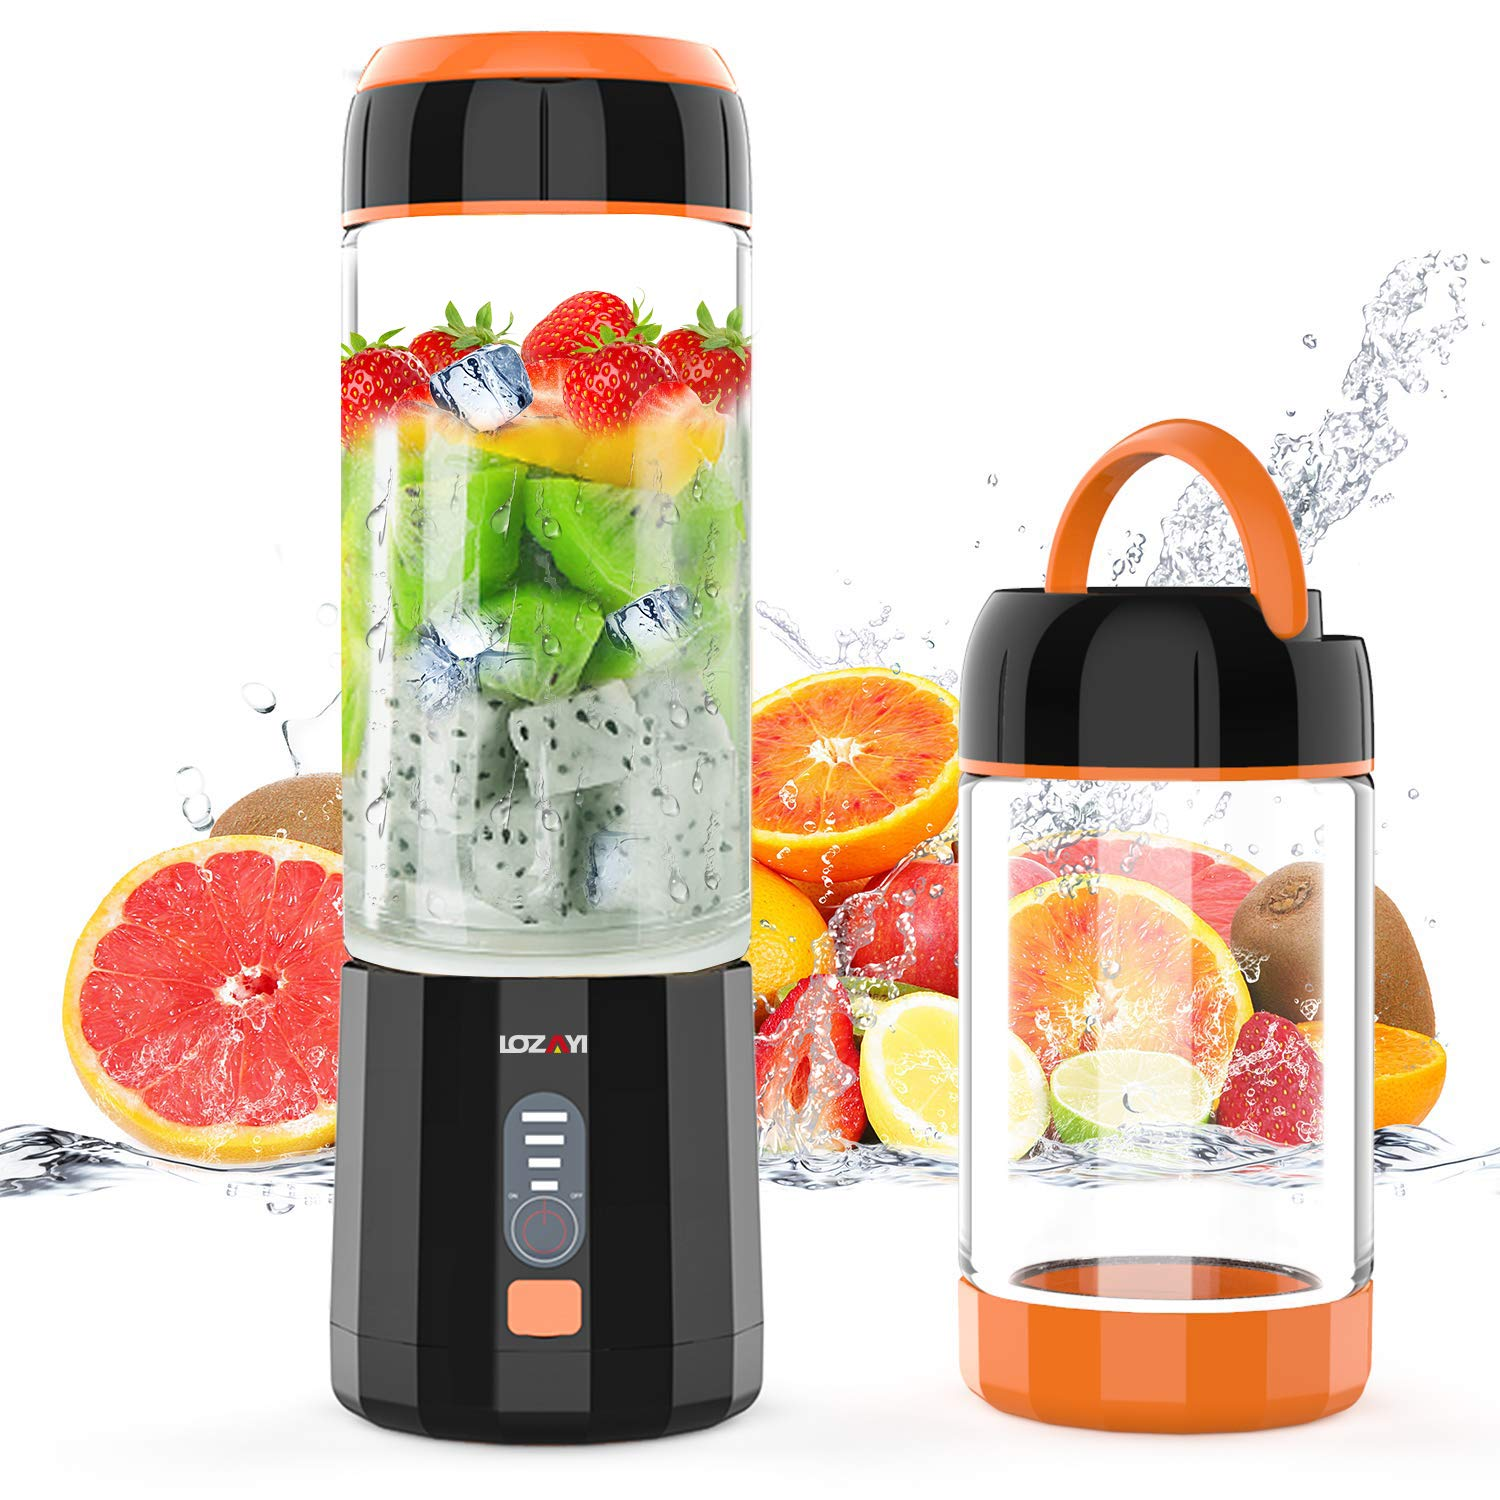 Smoothie Blender, LOZAYI Portable Blender Travel USB Rechargeable Juicer Cup for Shakes and Smoothies, Cordless Small Personal Blender Fruit Mixer Mini Blender with Led Displayer for Outdoor Travel Home Office (Orange)